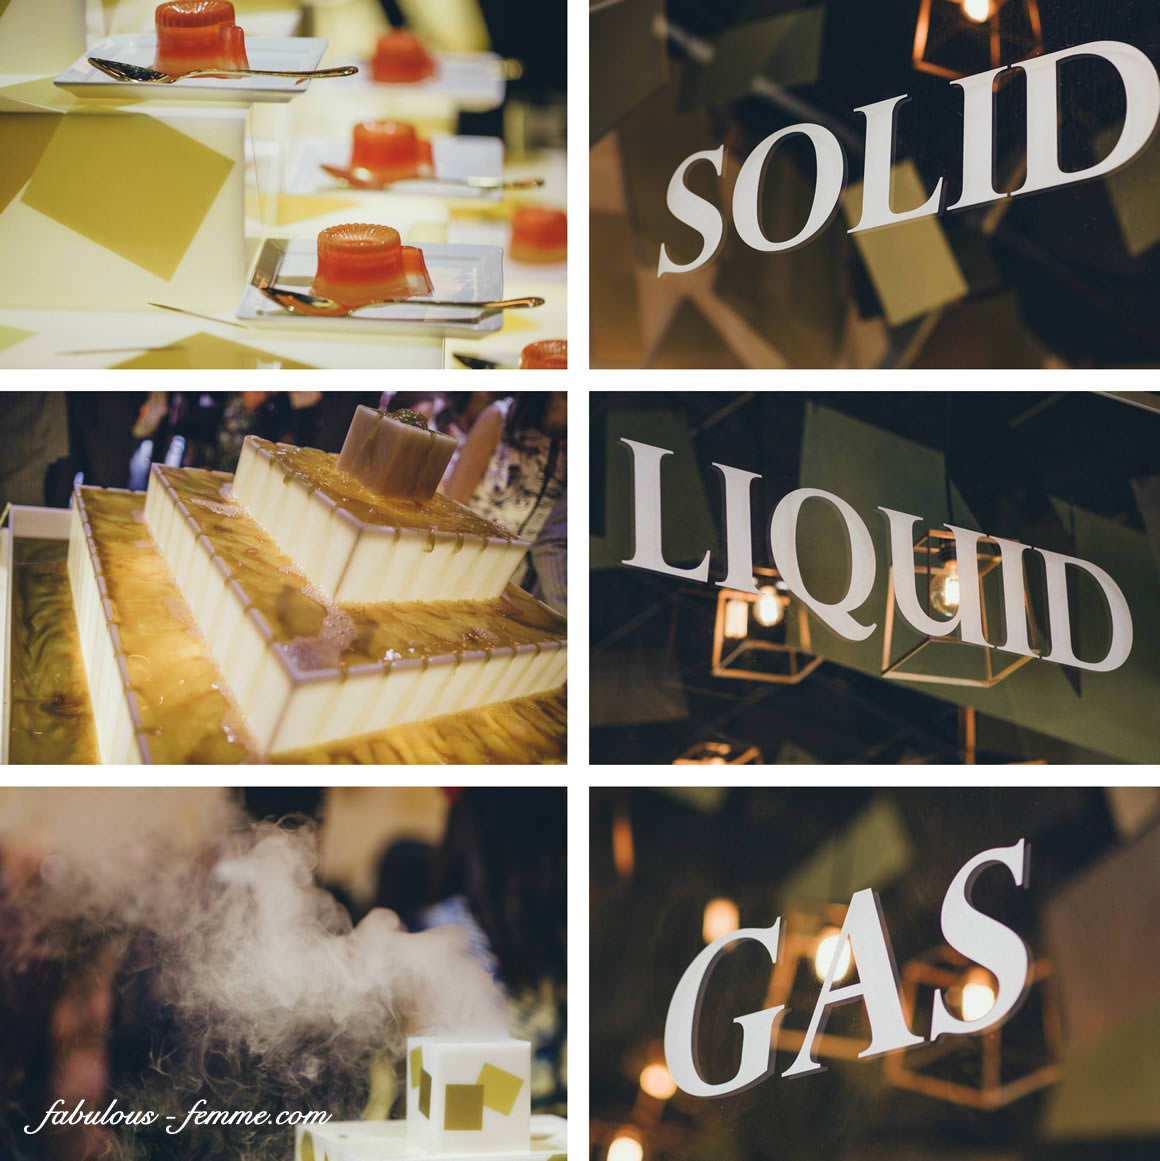 serving of liquid, gas and solid treats